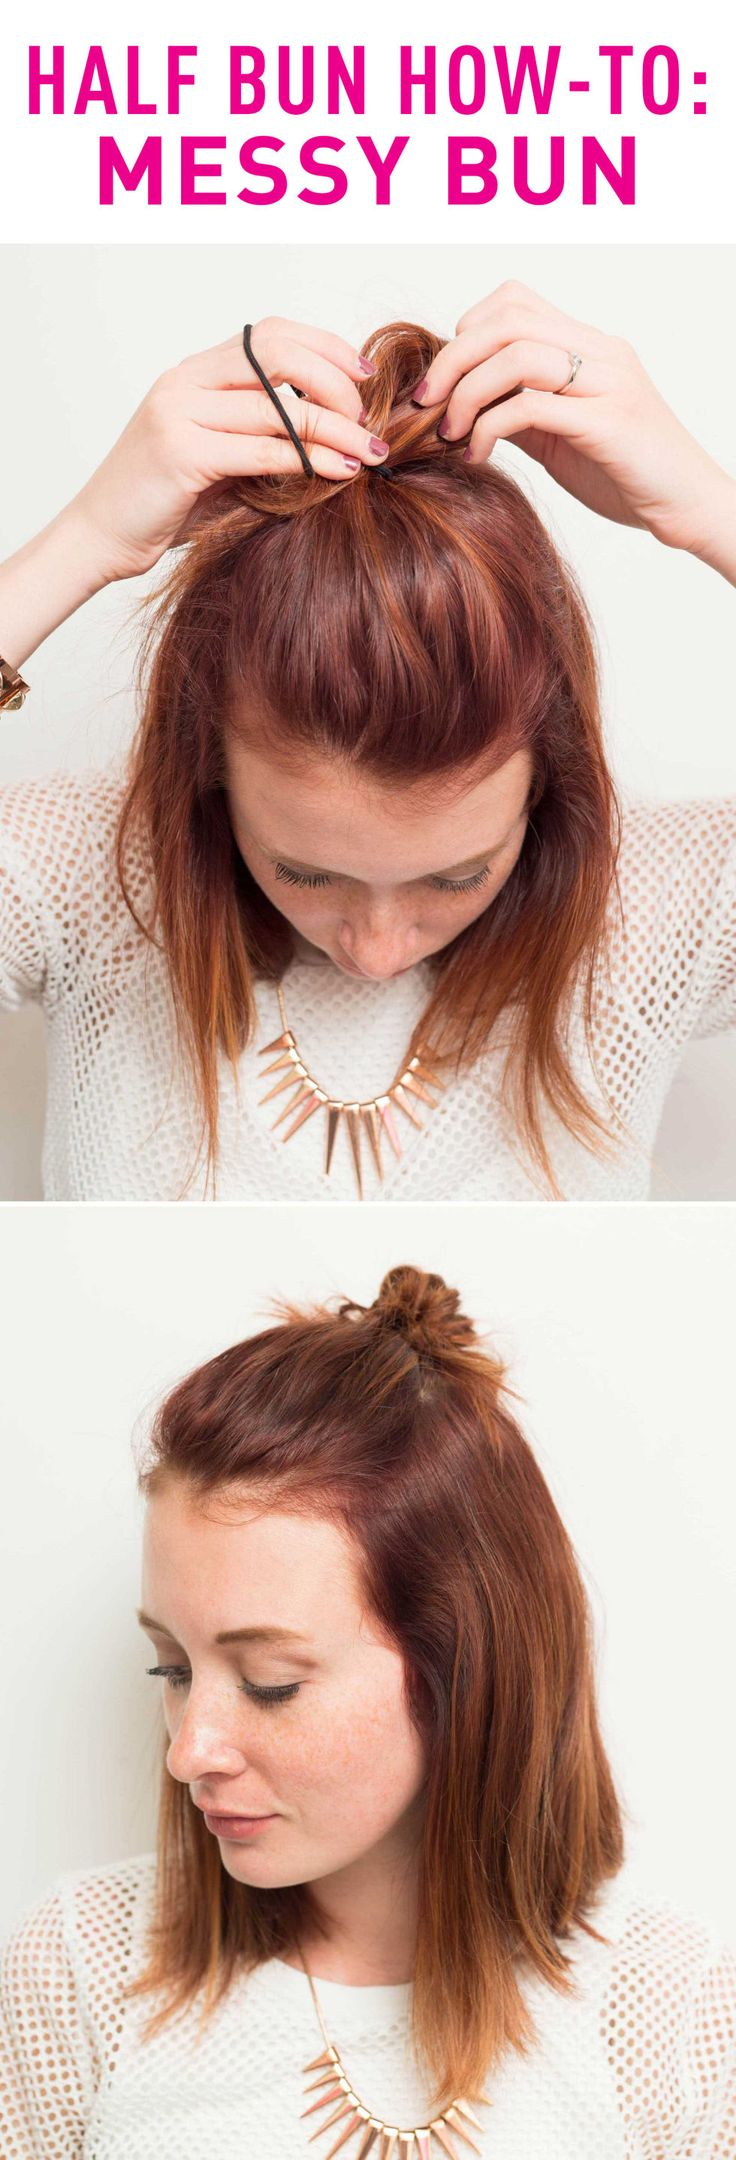 MESSY HALF BUN HOW-TO: Replicate this ~sexy~ and slightly undone half bun hairstyle by pulling some hair up into a ponytail, looping it through the elastic band once fully. Then as you pull it through the second time, only do it halfway to create a messy loop. Pull the loop and adjust it to the shape and messiness you want. Click through for the full instructions and details!